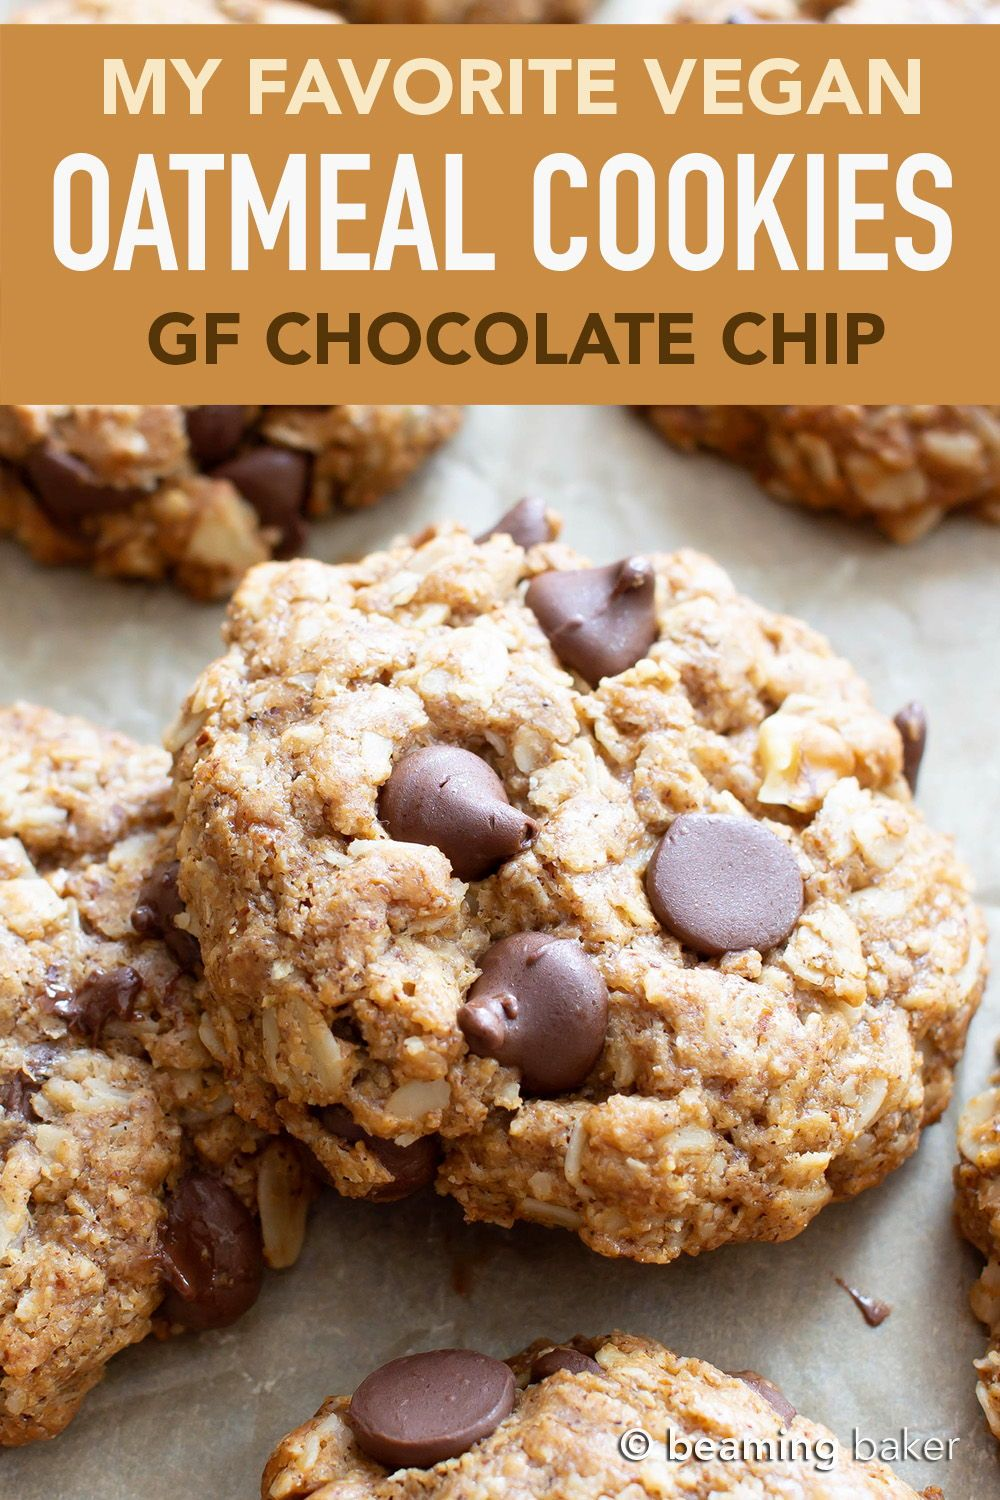 Pin By S Ballas On Recipies Gluten Free Oatmeal Chocolate Chip